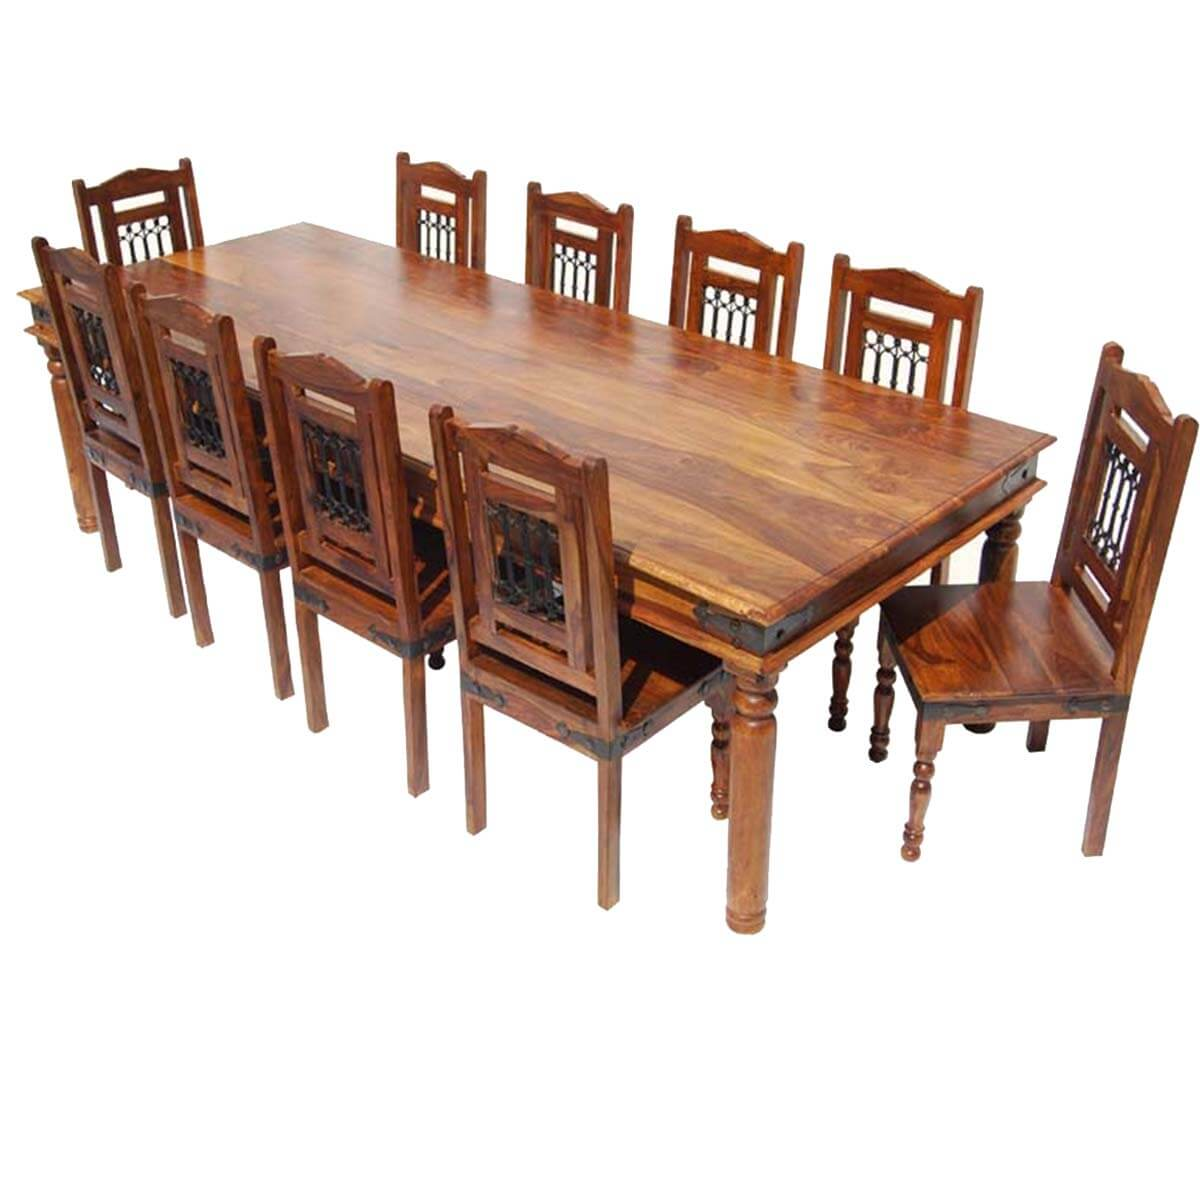 Solid wood large rustic dining room table chair sideboard set for Dining room table and buffet sets